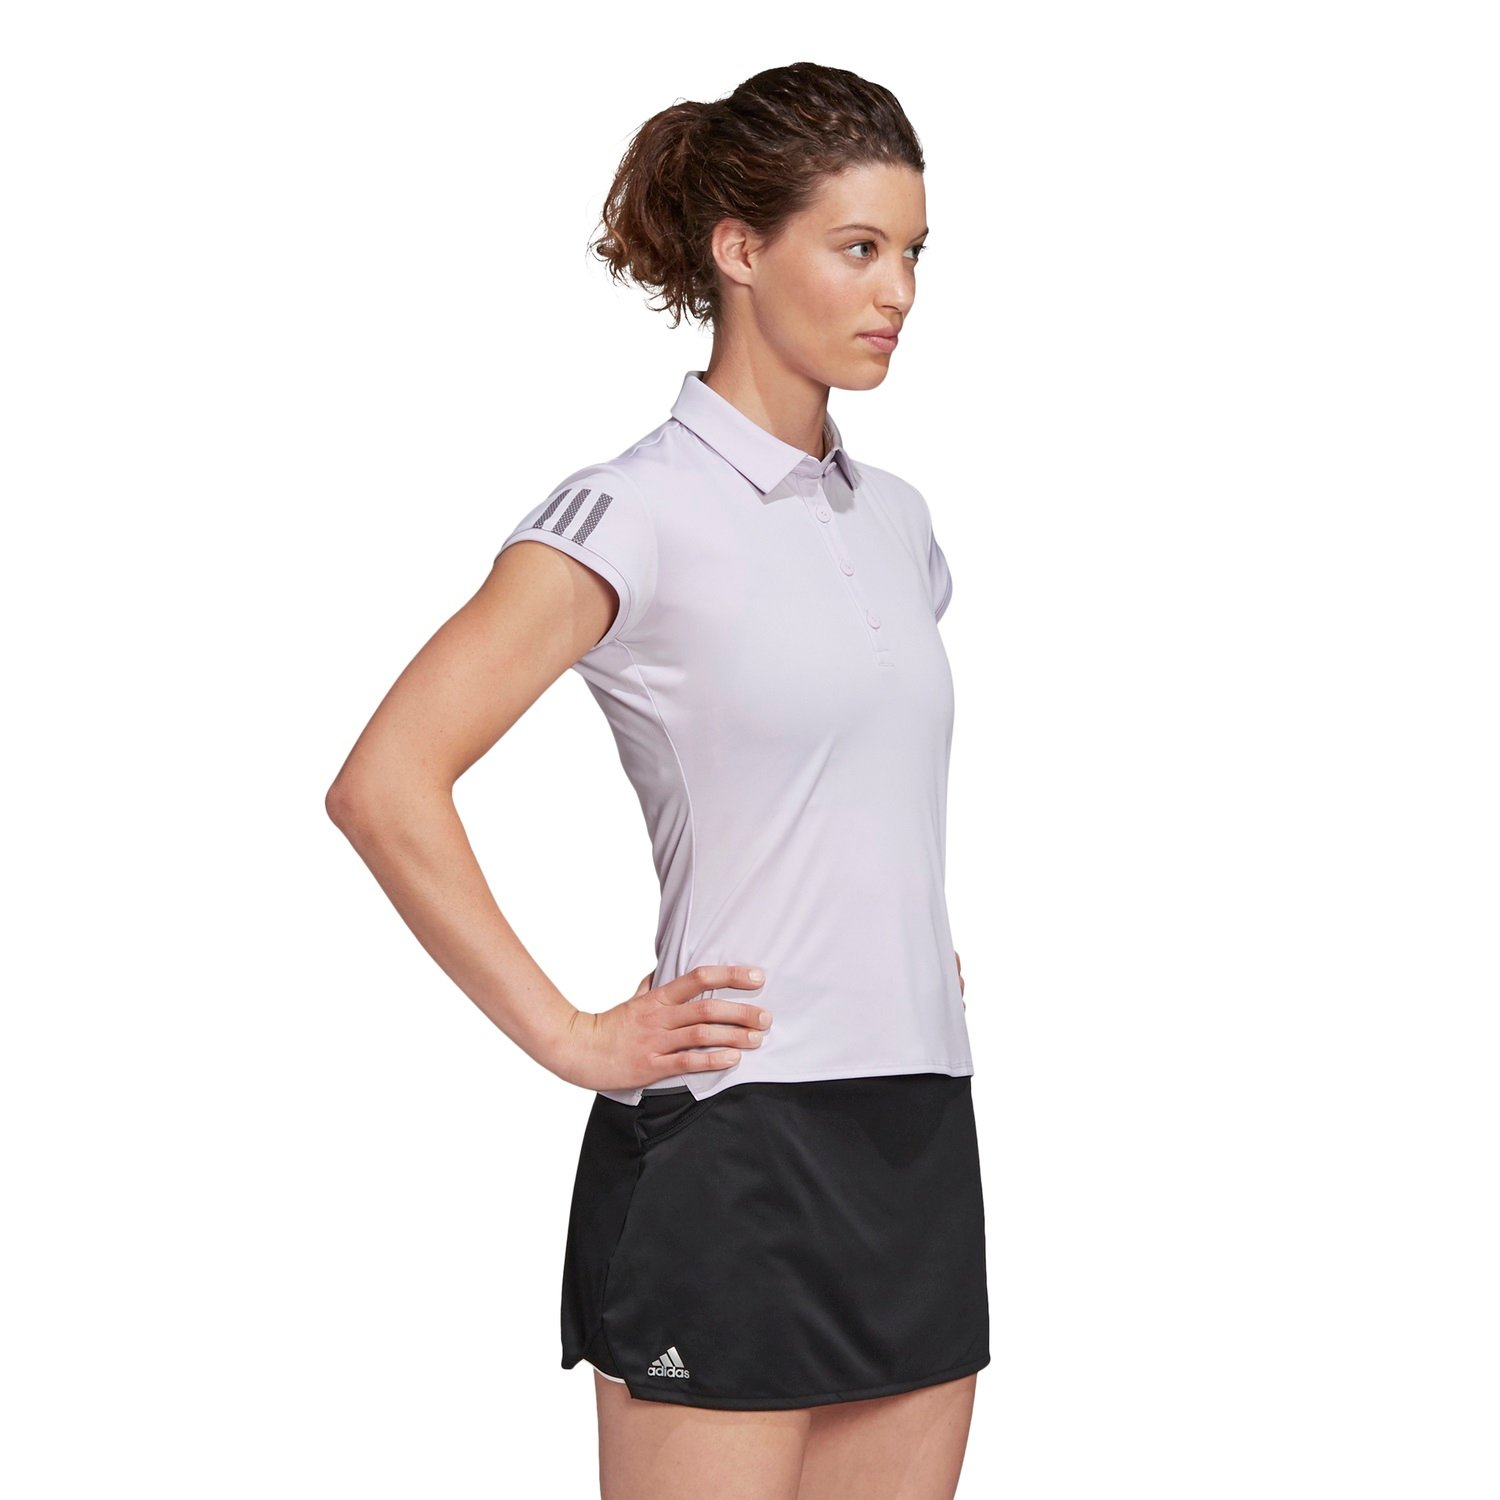 adidas Polo Club 3 Stripes 2020 flieder Damen